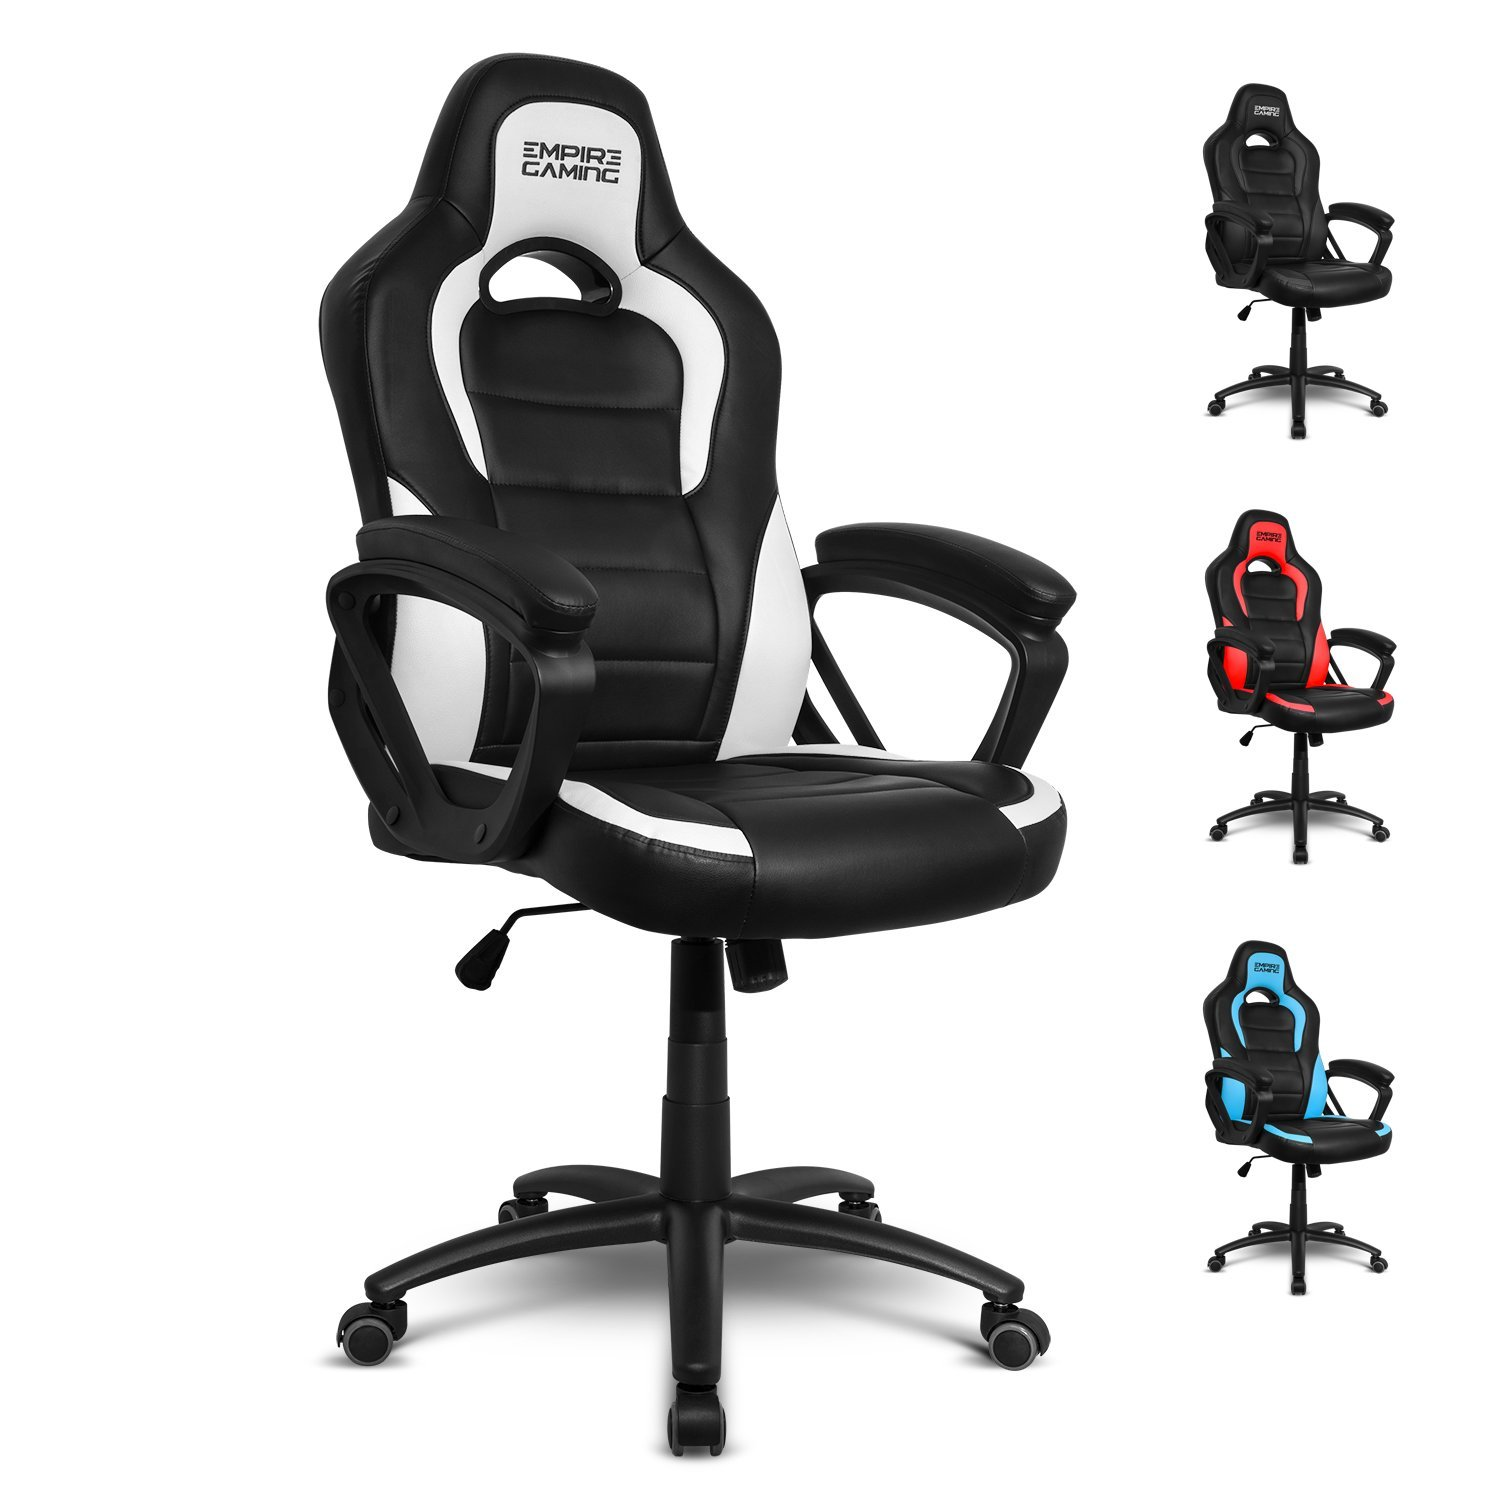 Empire Gaming - Sillón Gamer Racing 500 serie Blanca - Reposabrazosultracómodos y mullidos: Amazon.es: Hogar